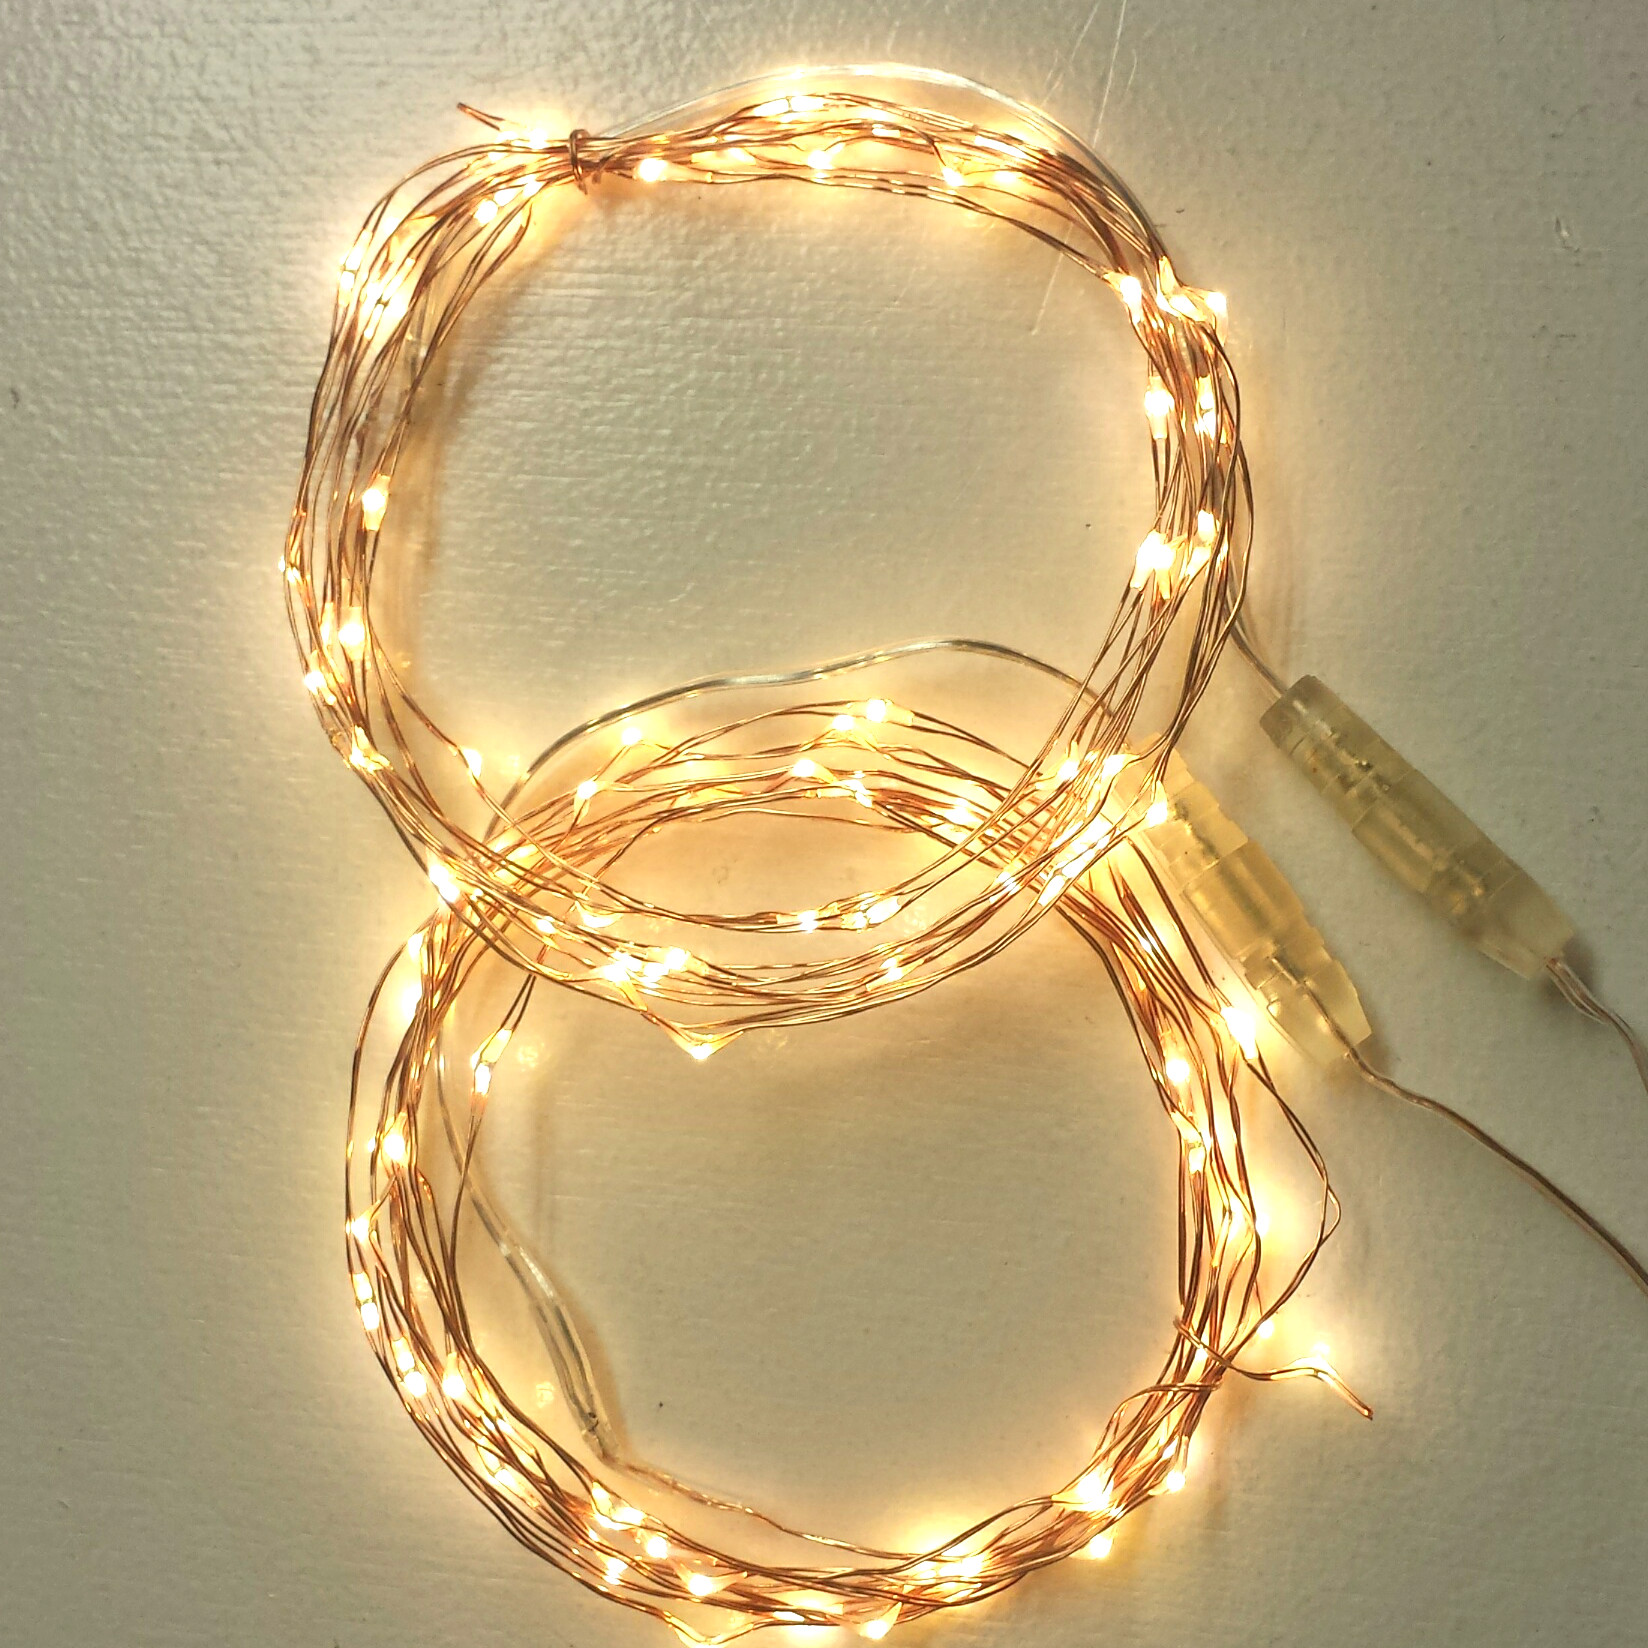 100 LEDs on two 50 LED Copper Wire String Lights